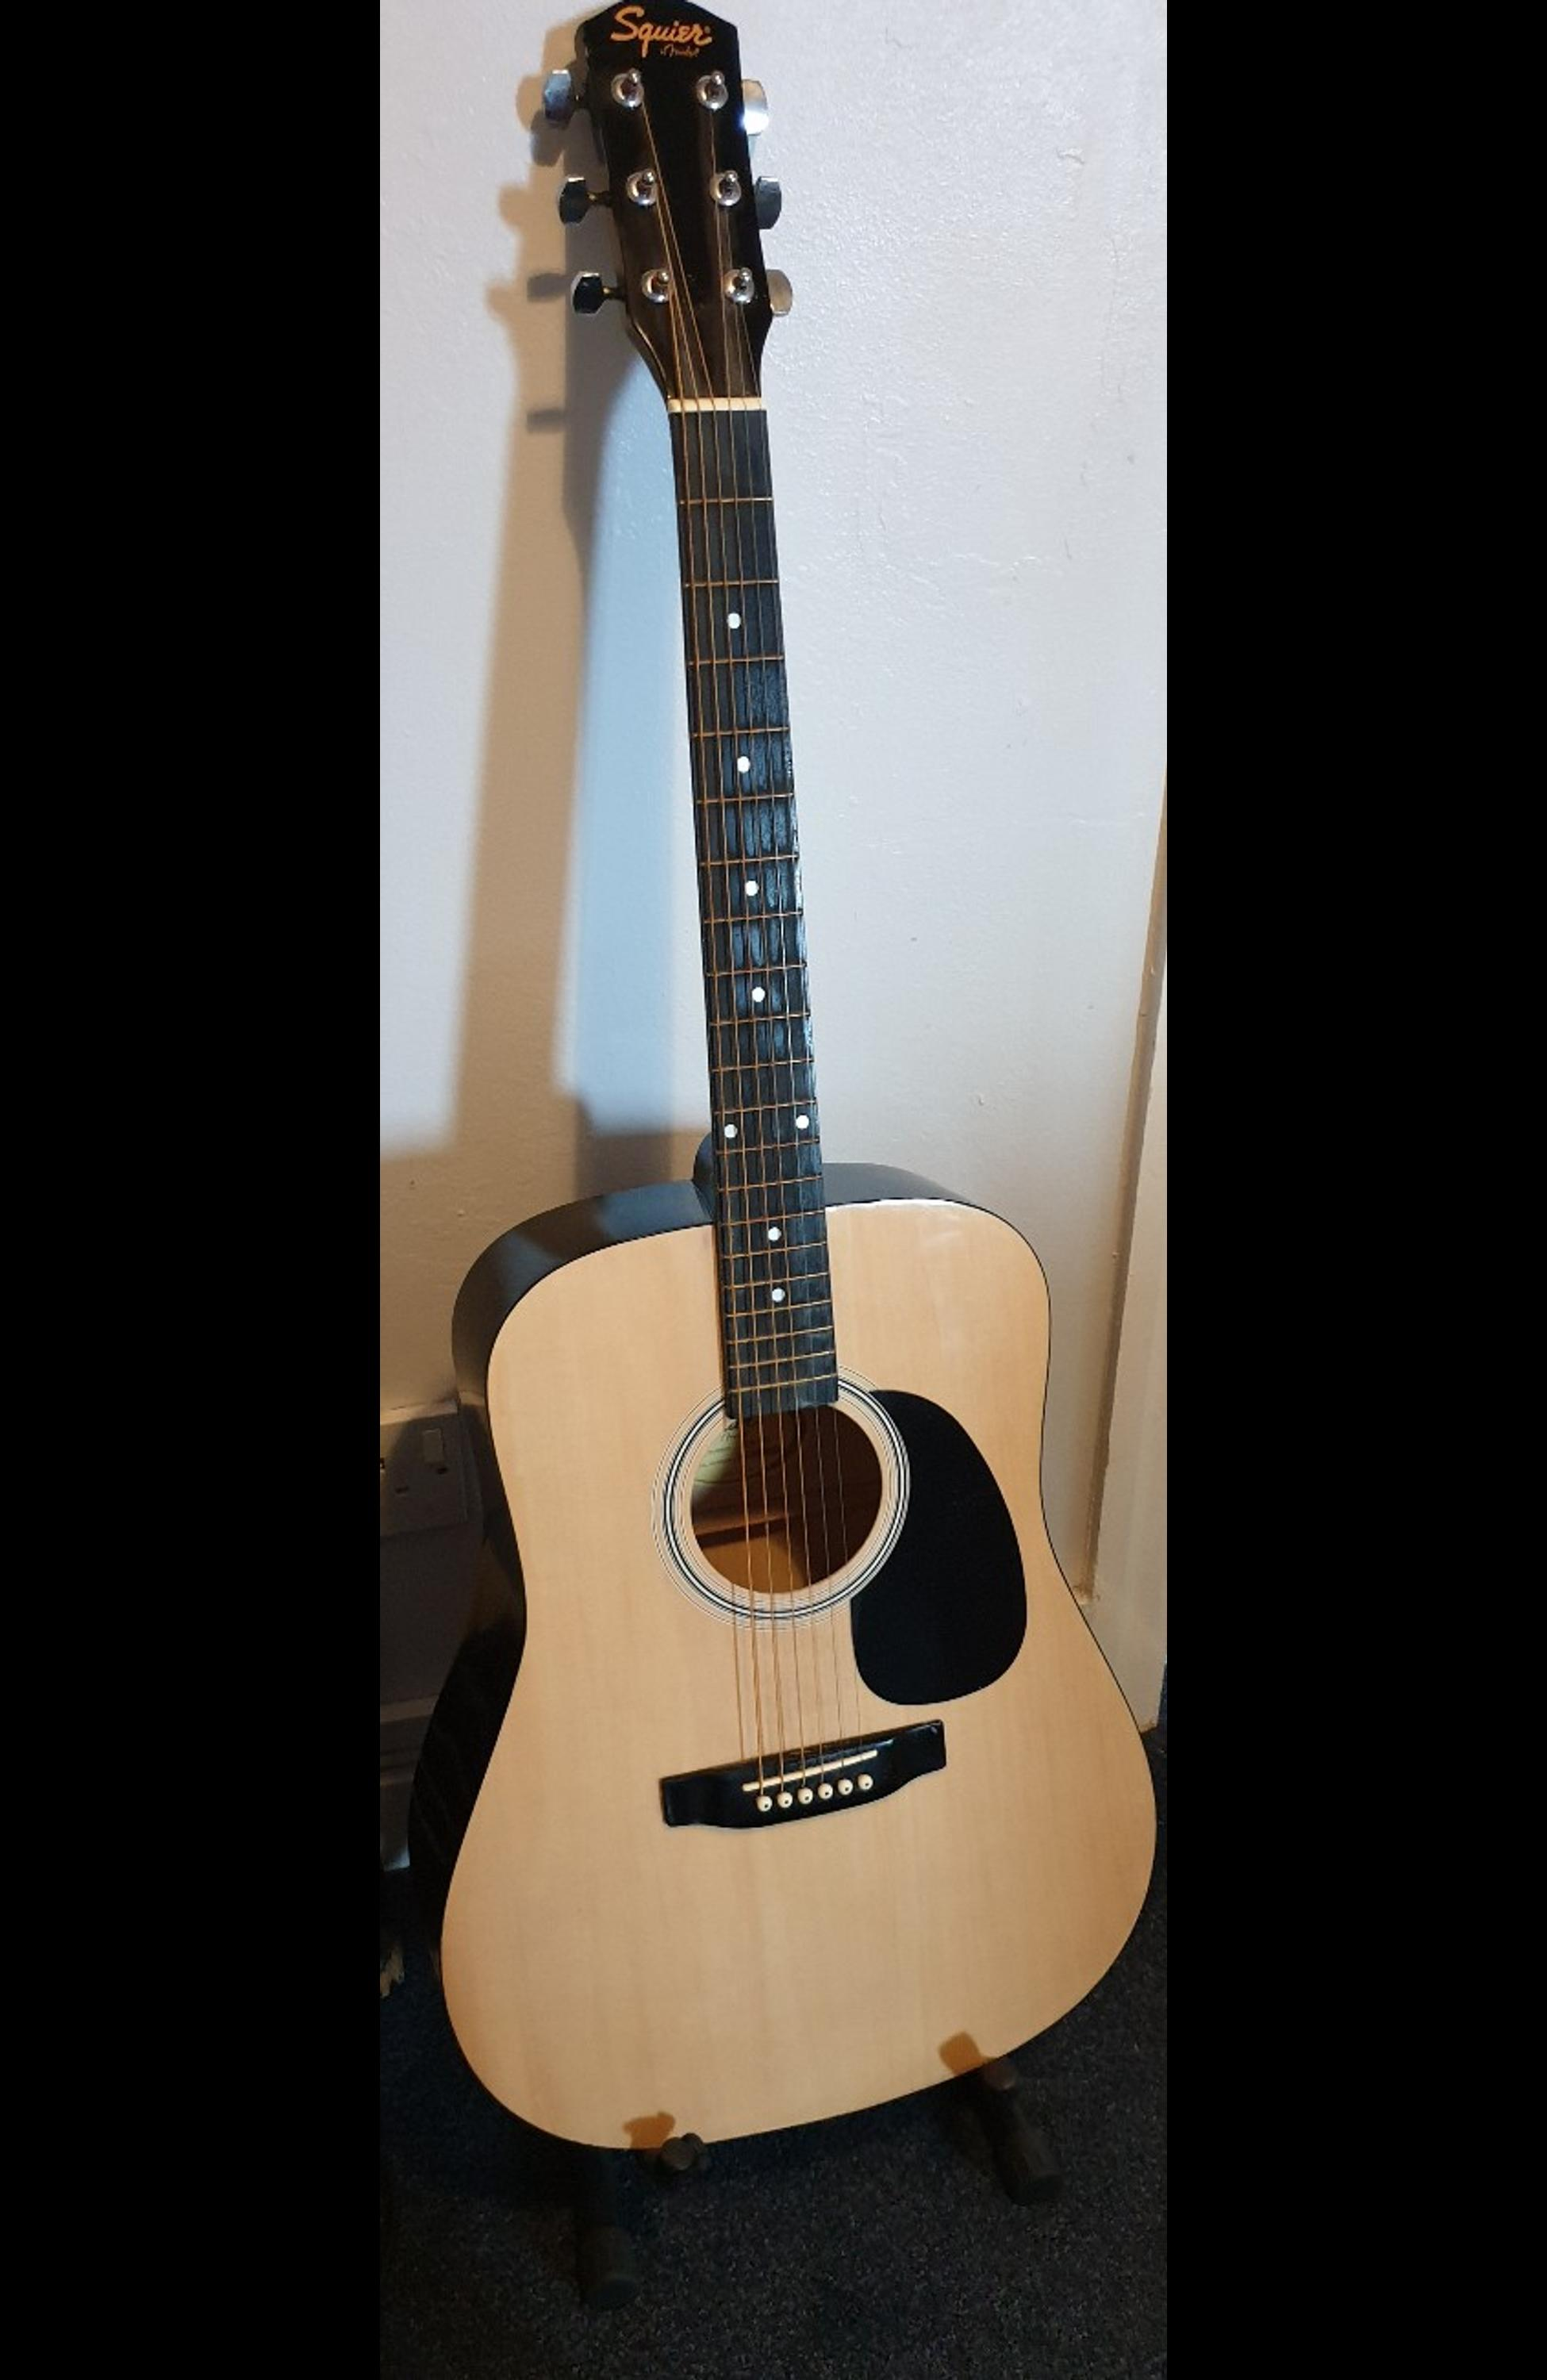 Squier By Fender Acoustic Sa 105 In Pentre Halkyn For 40 00 For Sale Shpock